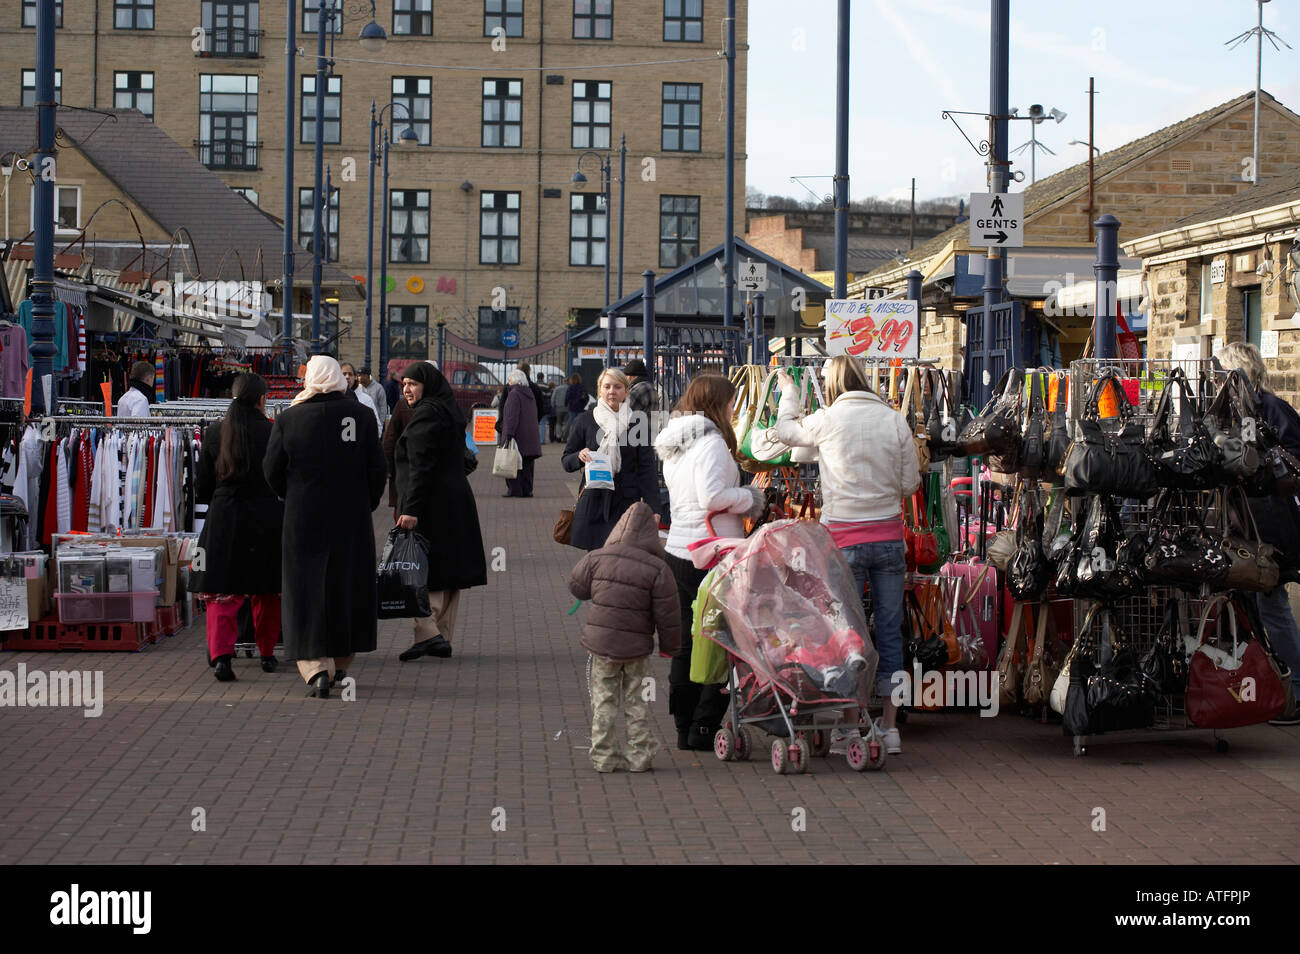 SHOPPERS IN DEWSBURY MARKET - Stock Image